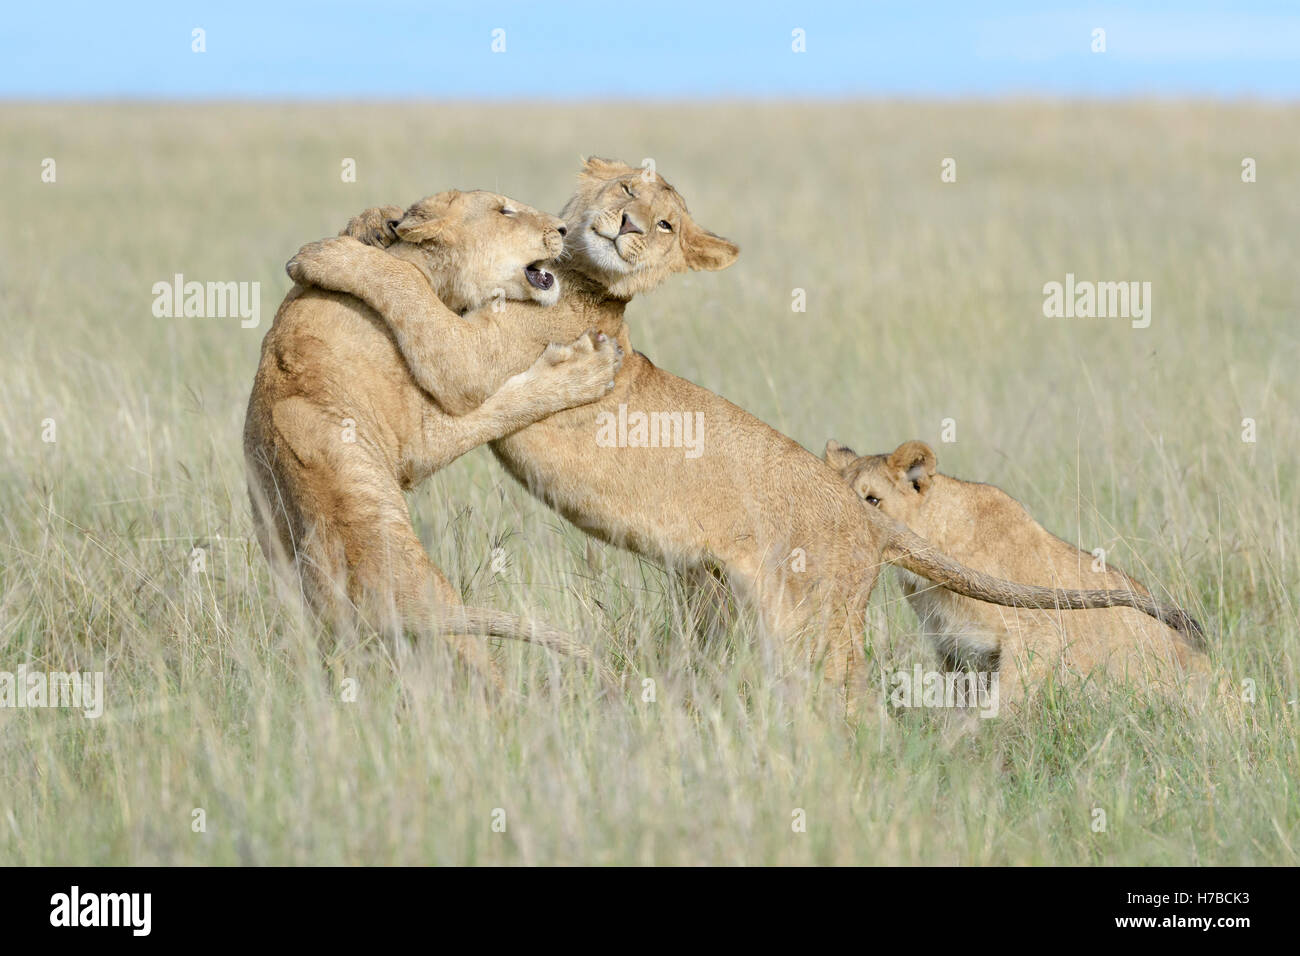 Young lions (Panthera leo) playing together, Maasai Mara national reserve, Kenya - Stock Image